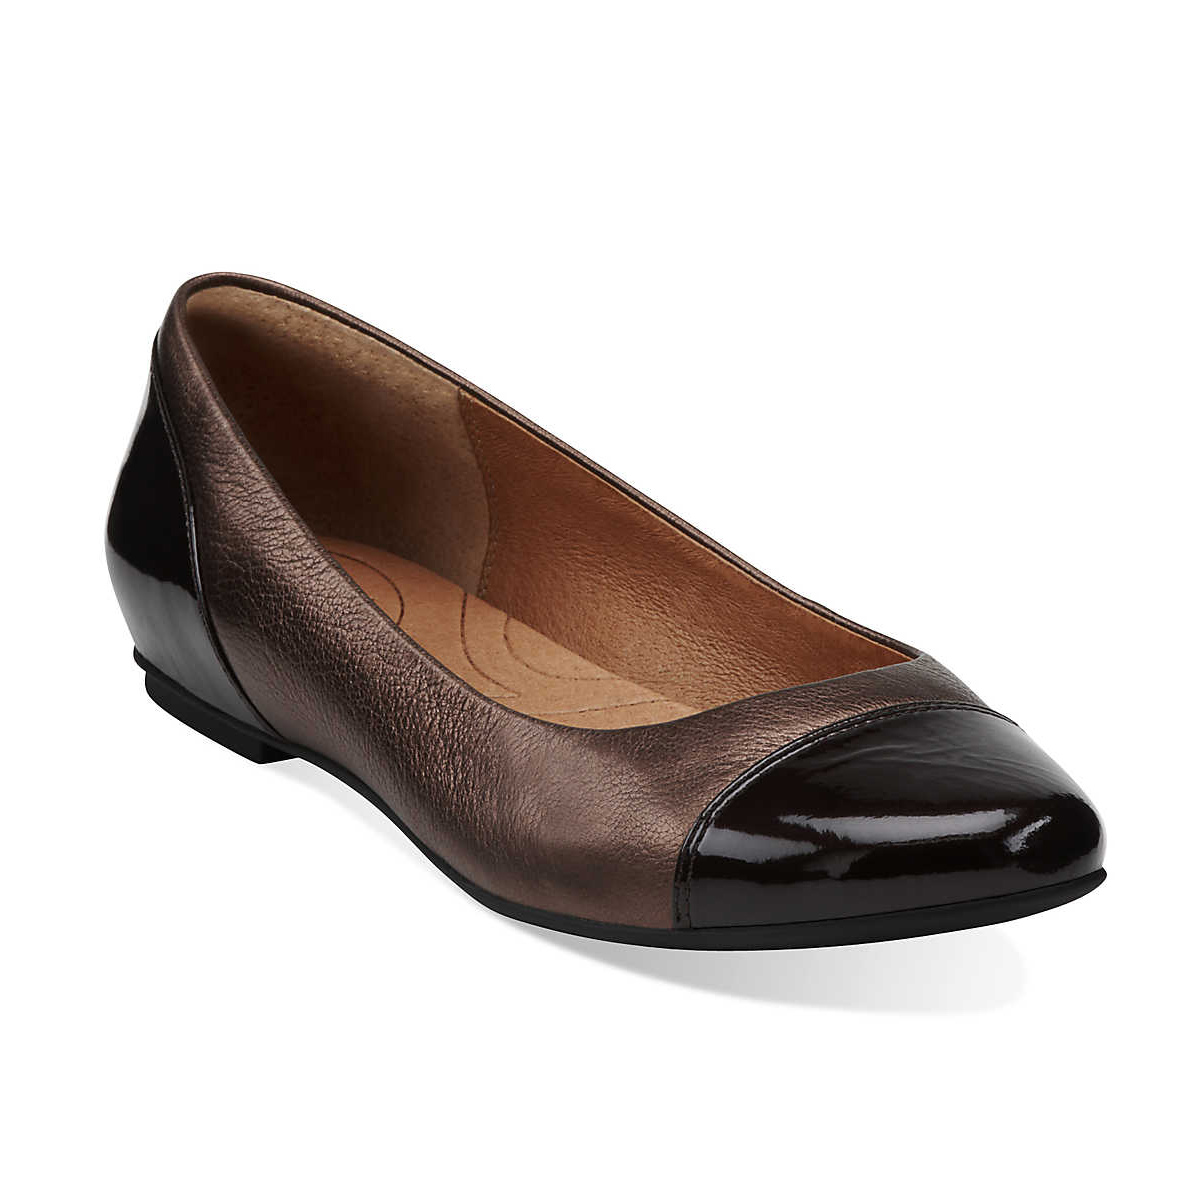 Indigo By Clarks Women's Valley Moon Flats Bronze - Shop now @ Shoolu.com